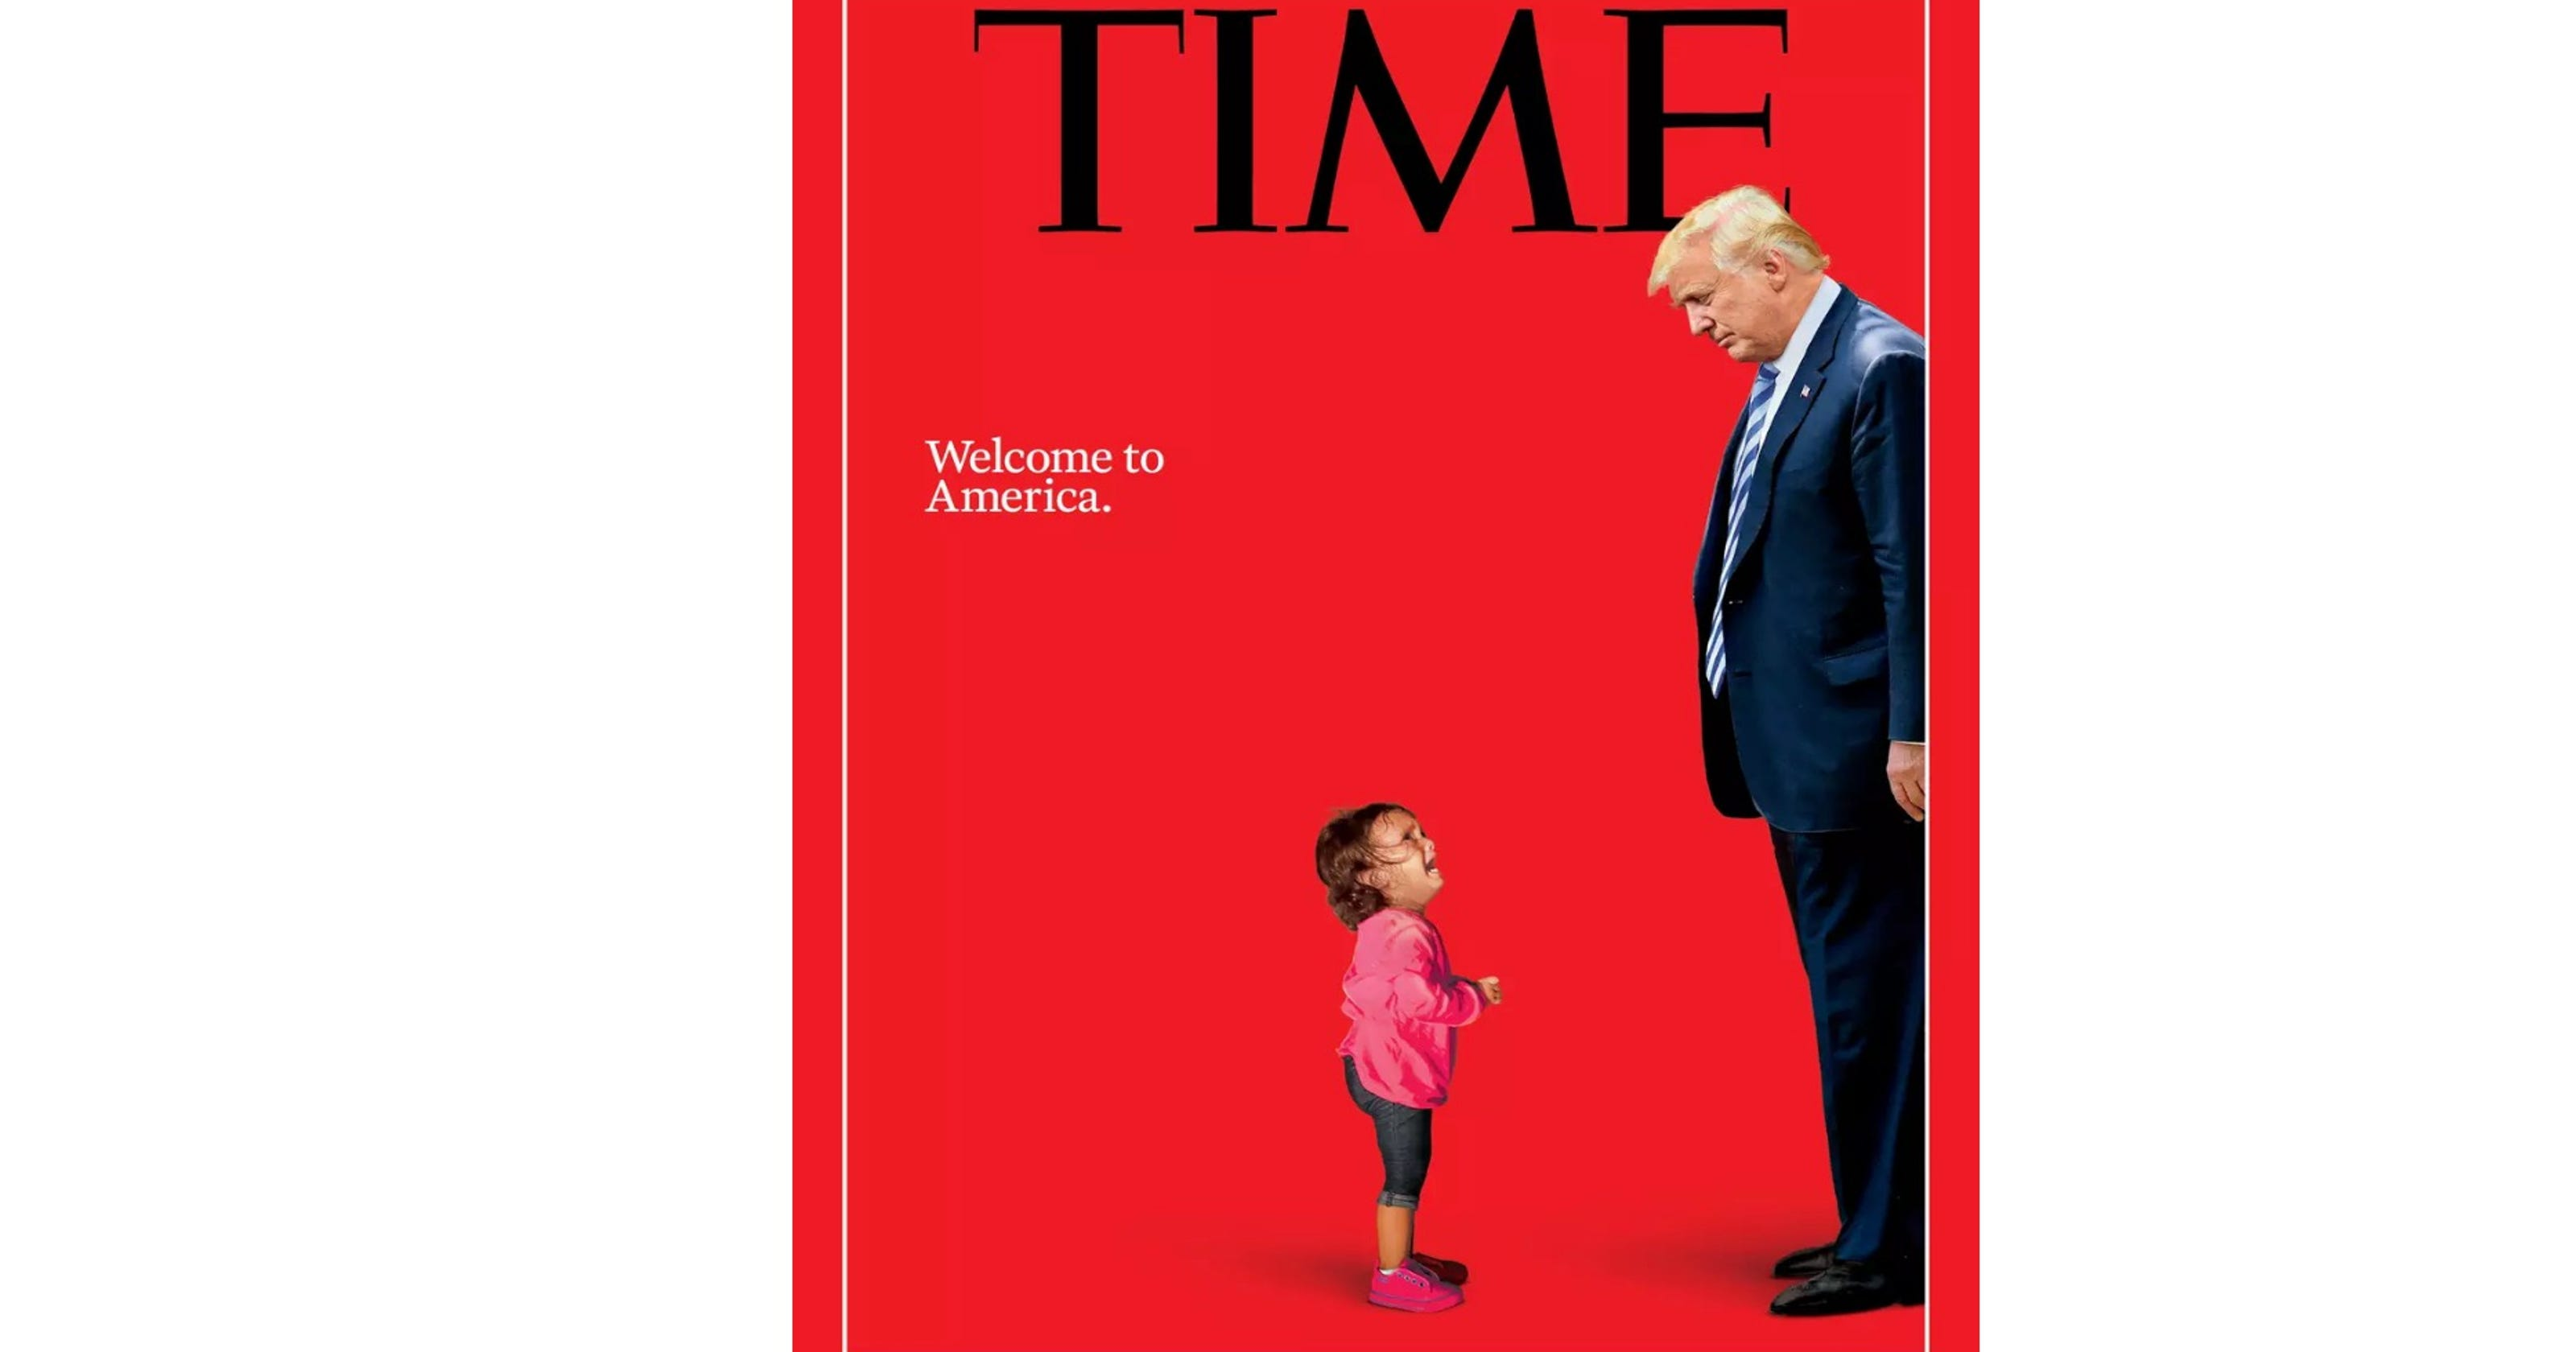 on Time magazine cover was never separated from mom, father says on